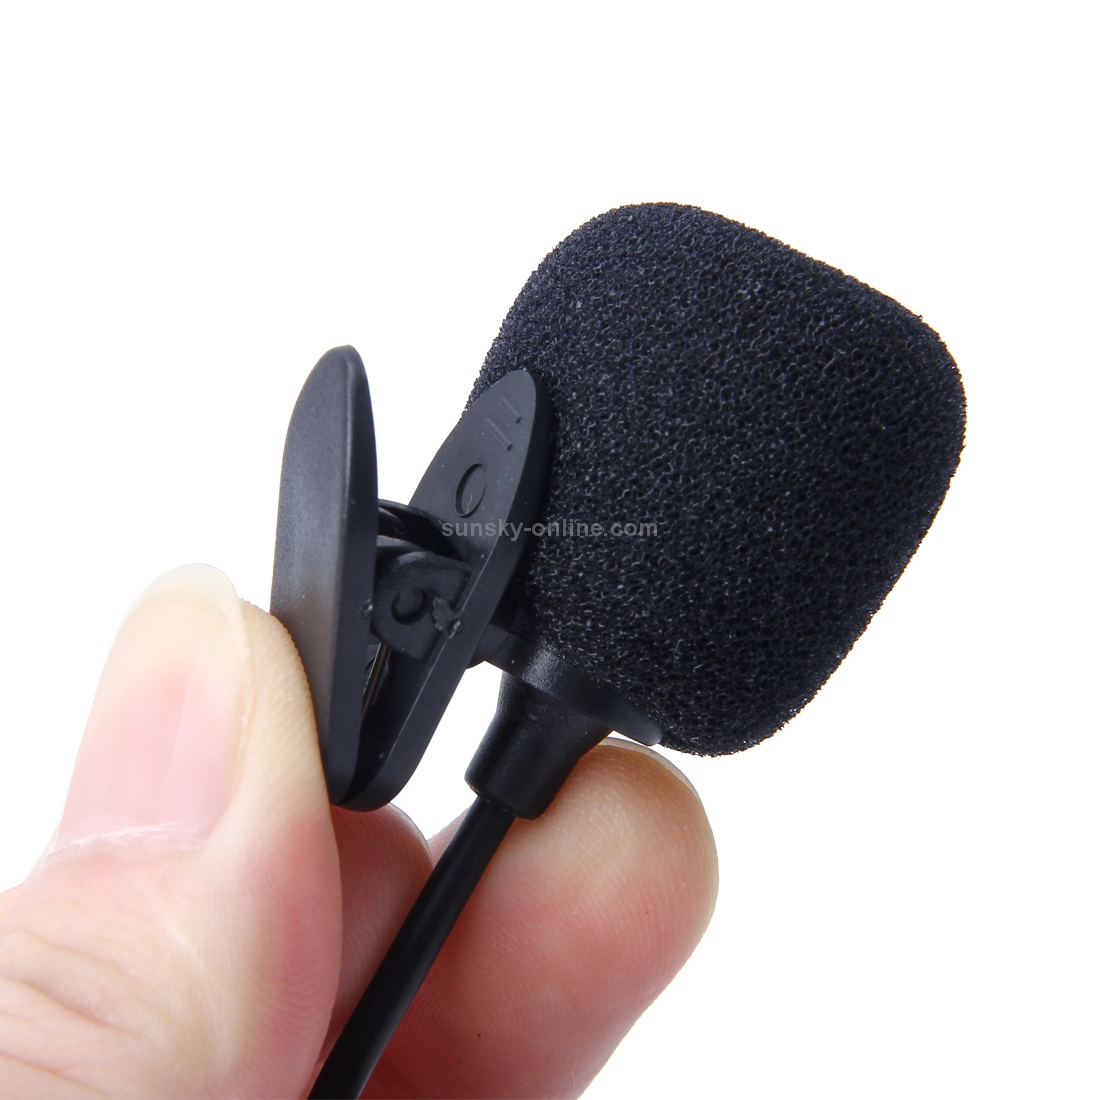 The Car Store >> SUNSKY - Car Audio Microphone 3.5mm Jack Plug Mic Stereo Mini Wired External Clip Microphone ...